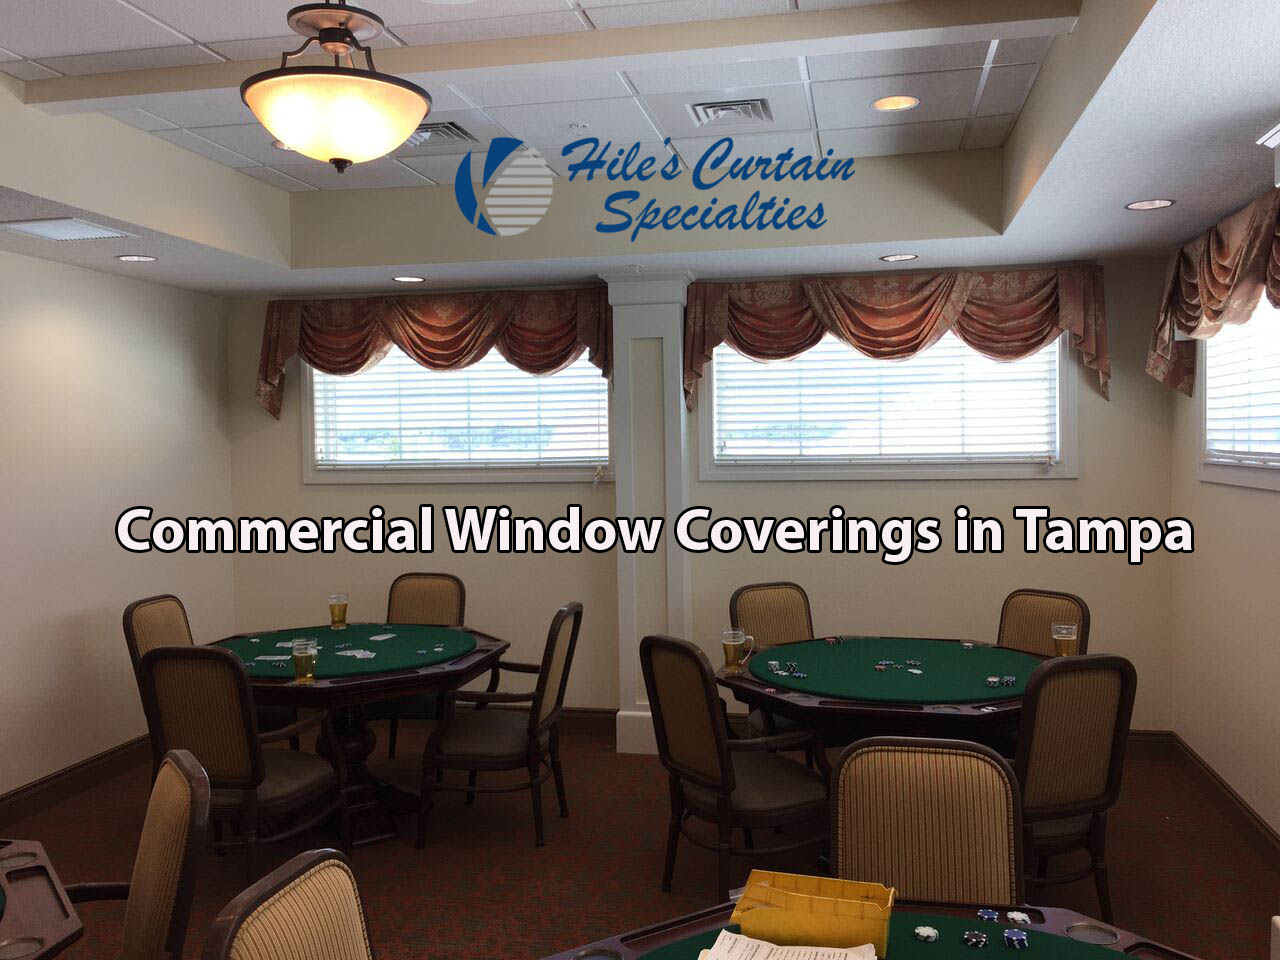 Commercial Window Coverings in Tampa Bay - Restaurant Curtains